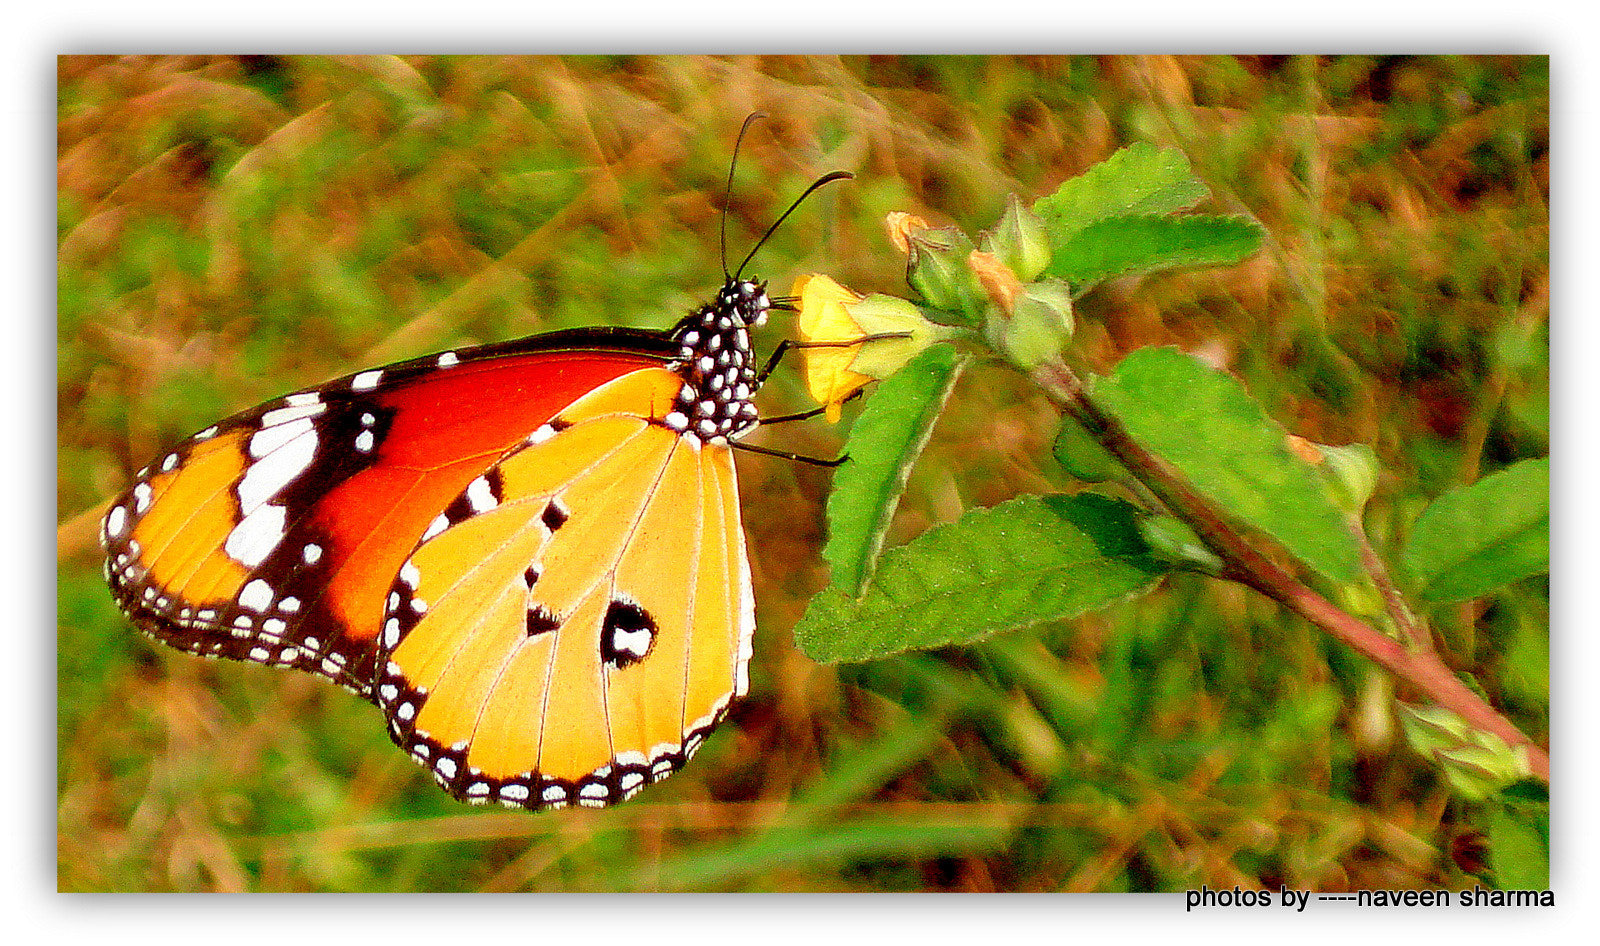 Photograph super butterfly in nice vicinity by naveen sharma on 500px